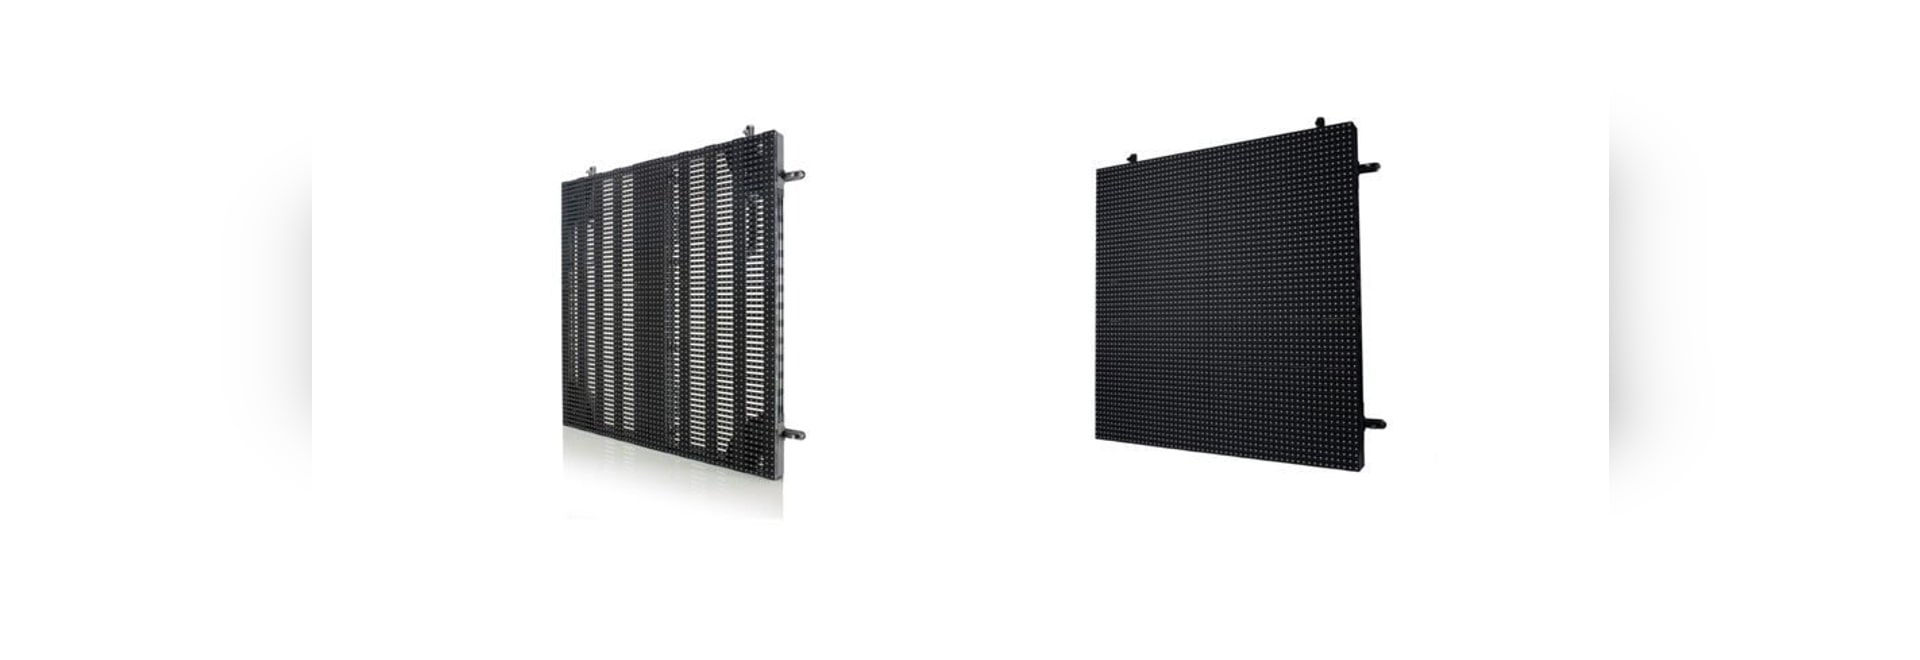 NEW: LED display by Barco